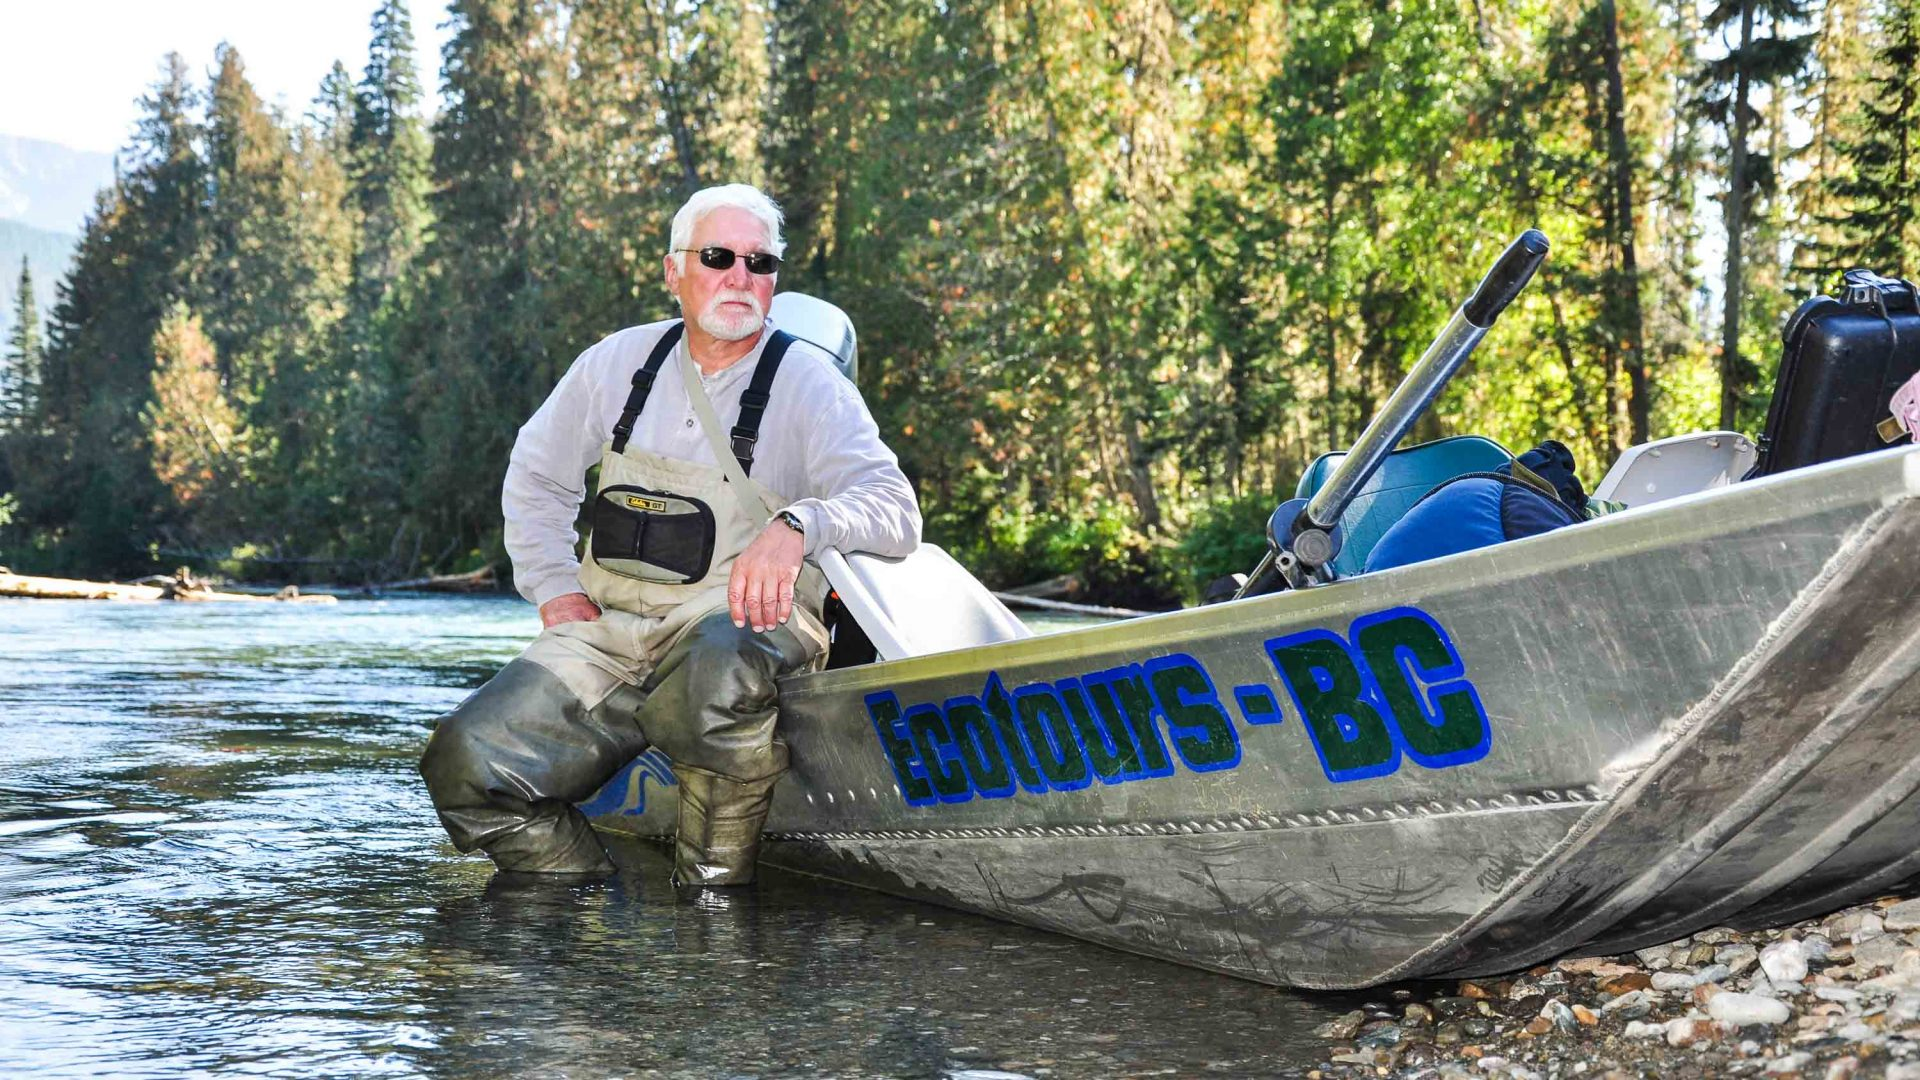 Boating through British Columbia's remote Cariboo mountains in search of grizzly bears.